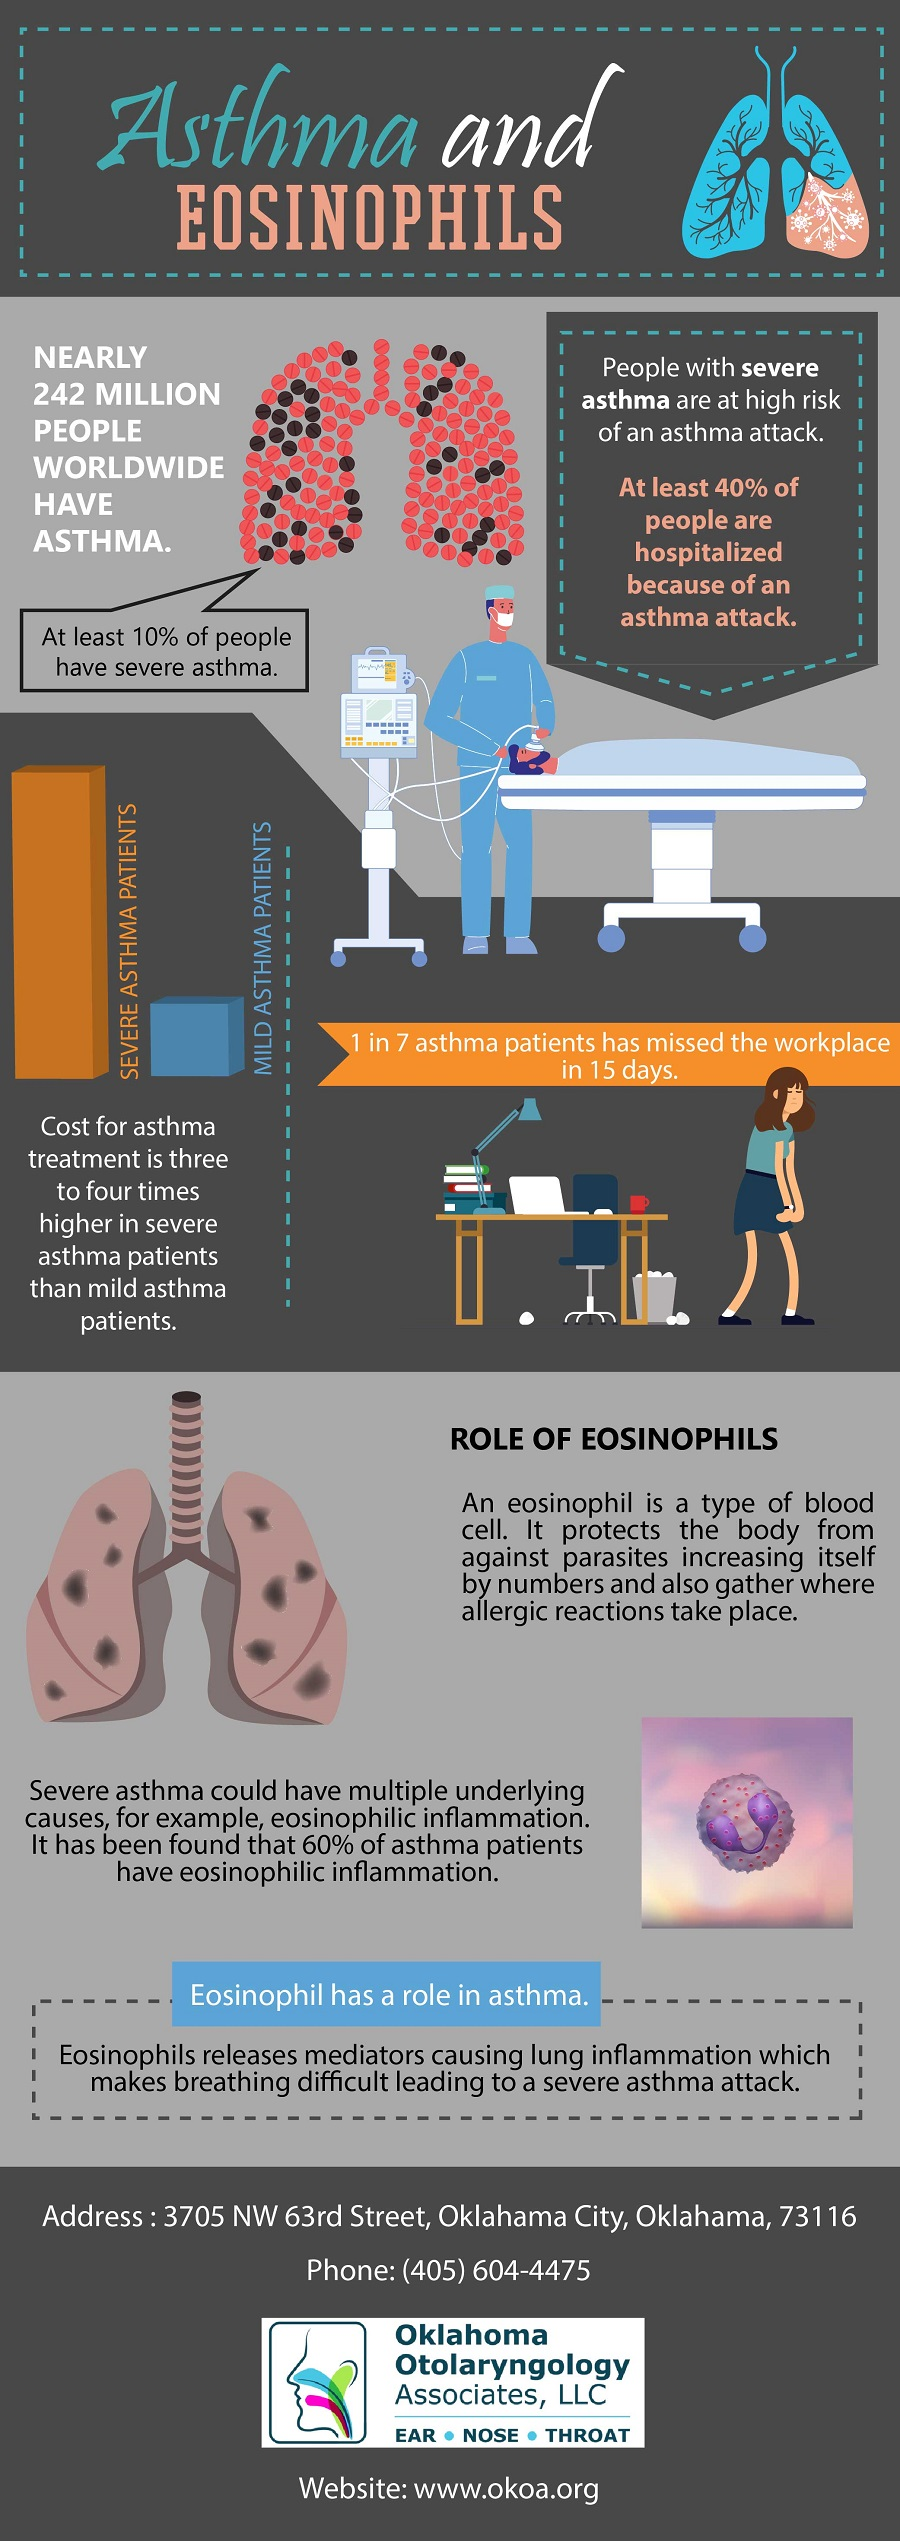 Asthma and Eosinophils